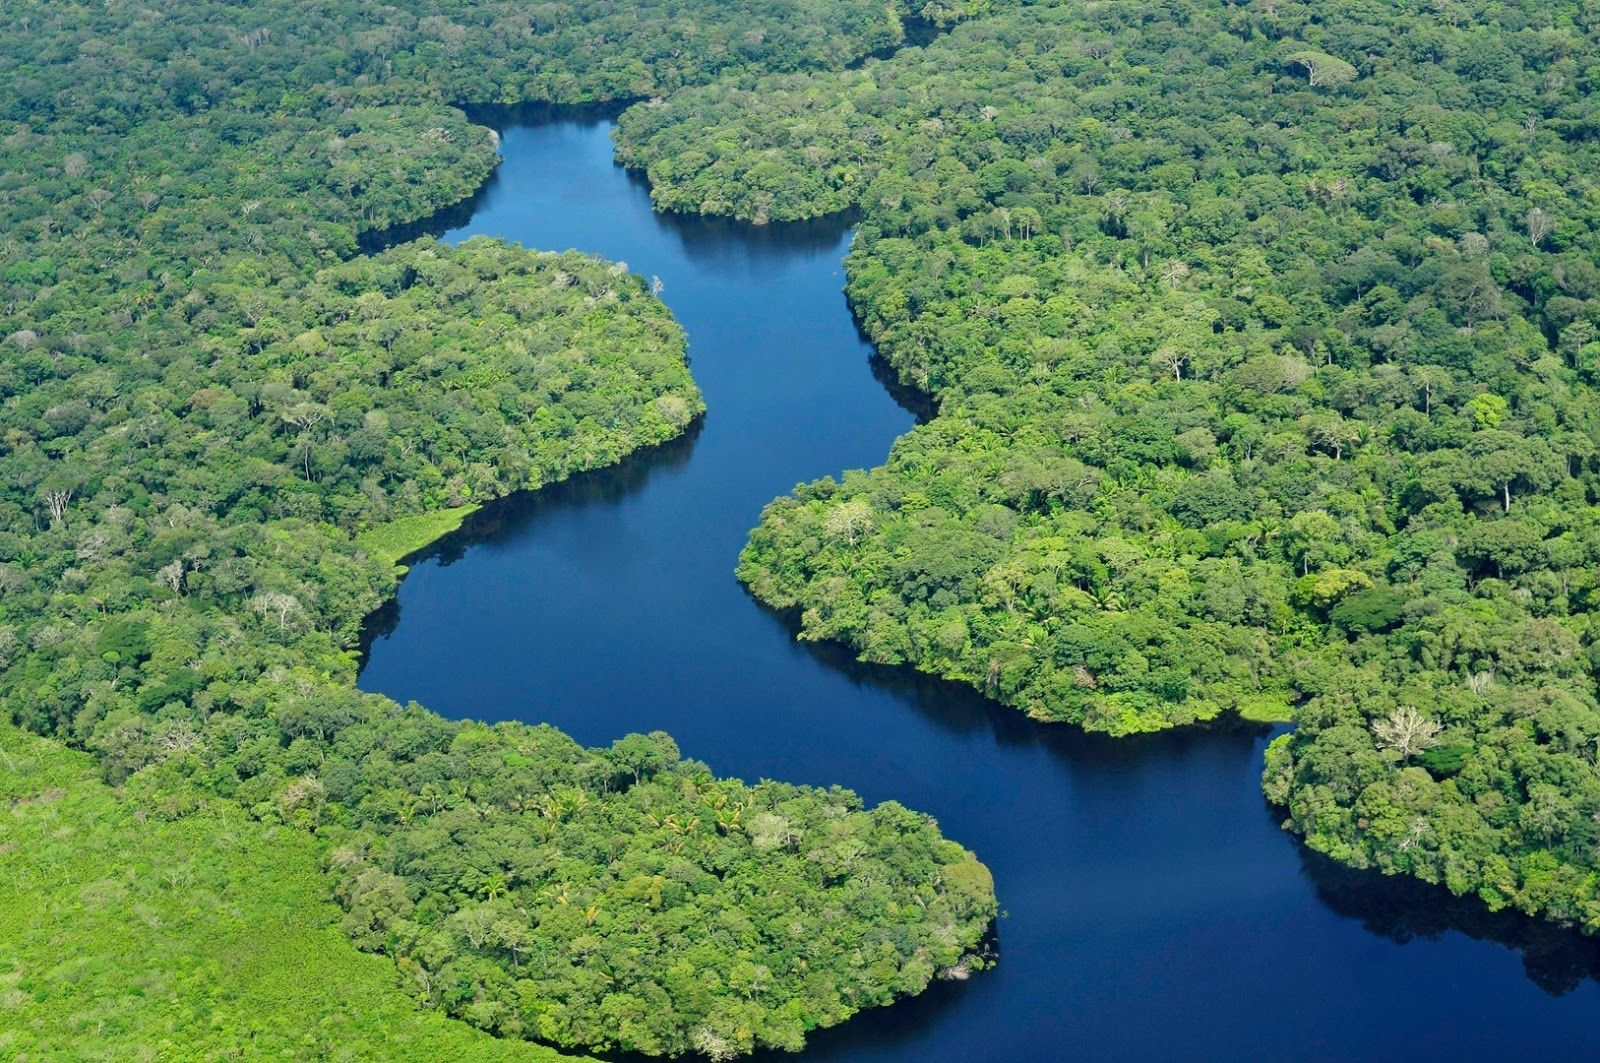 The Amazon River Basin Is Home To The Largest Tropical Rainforest